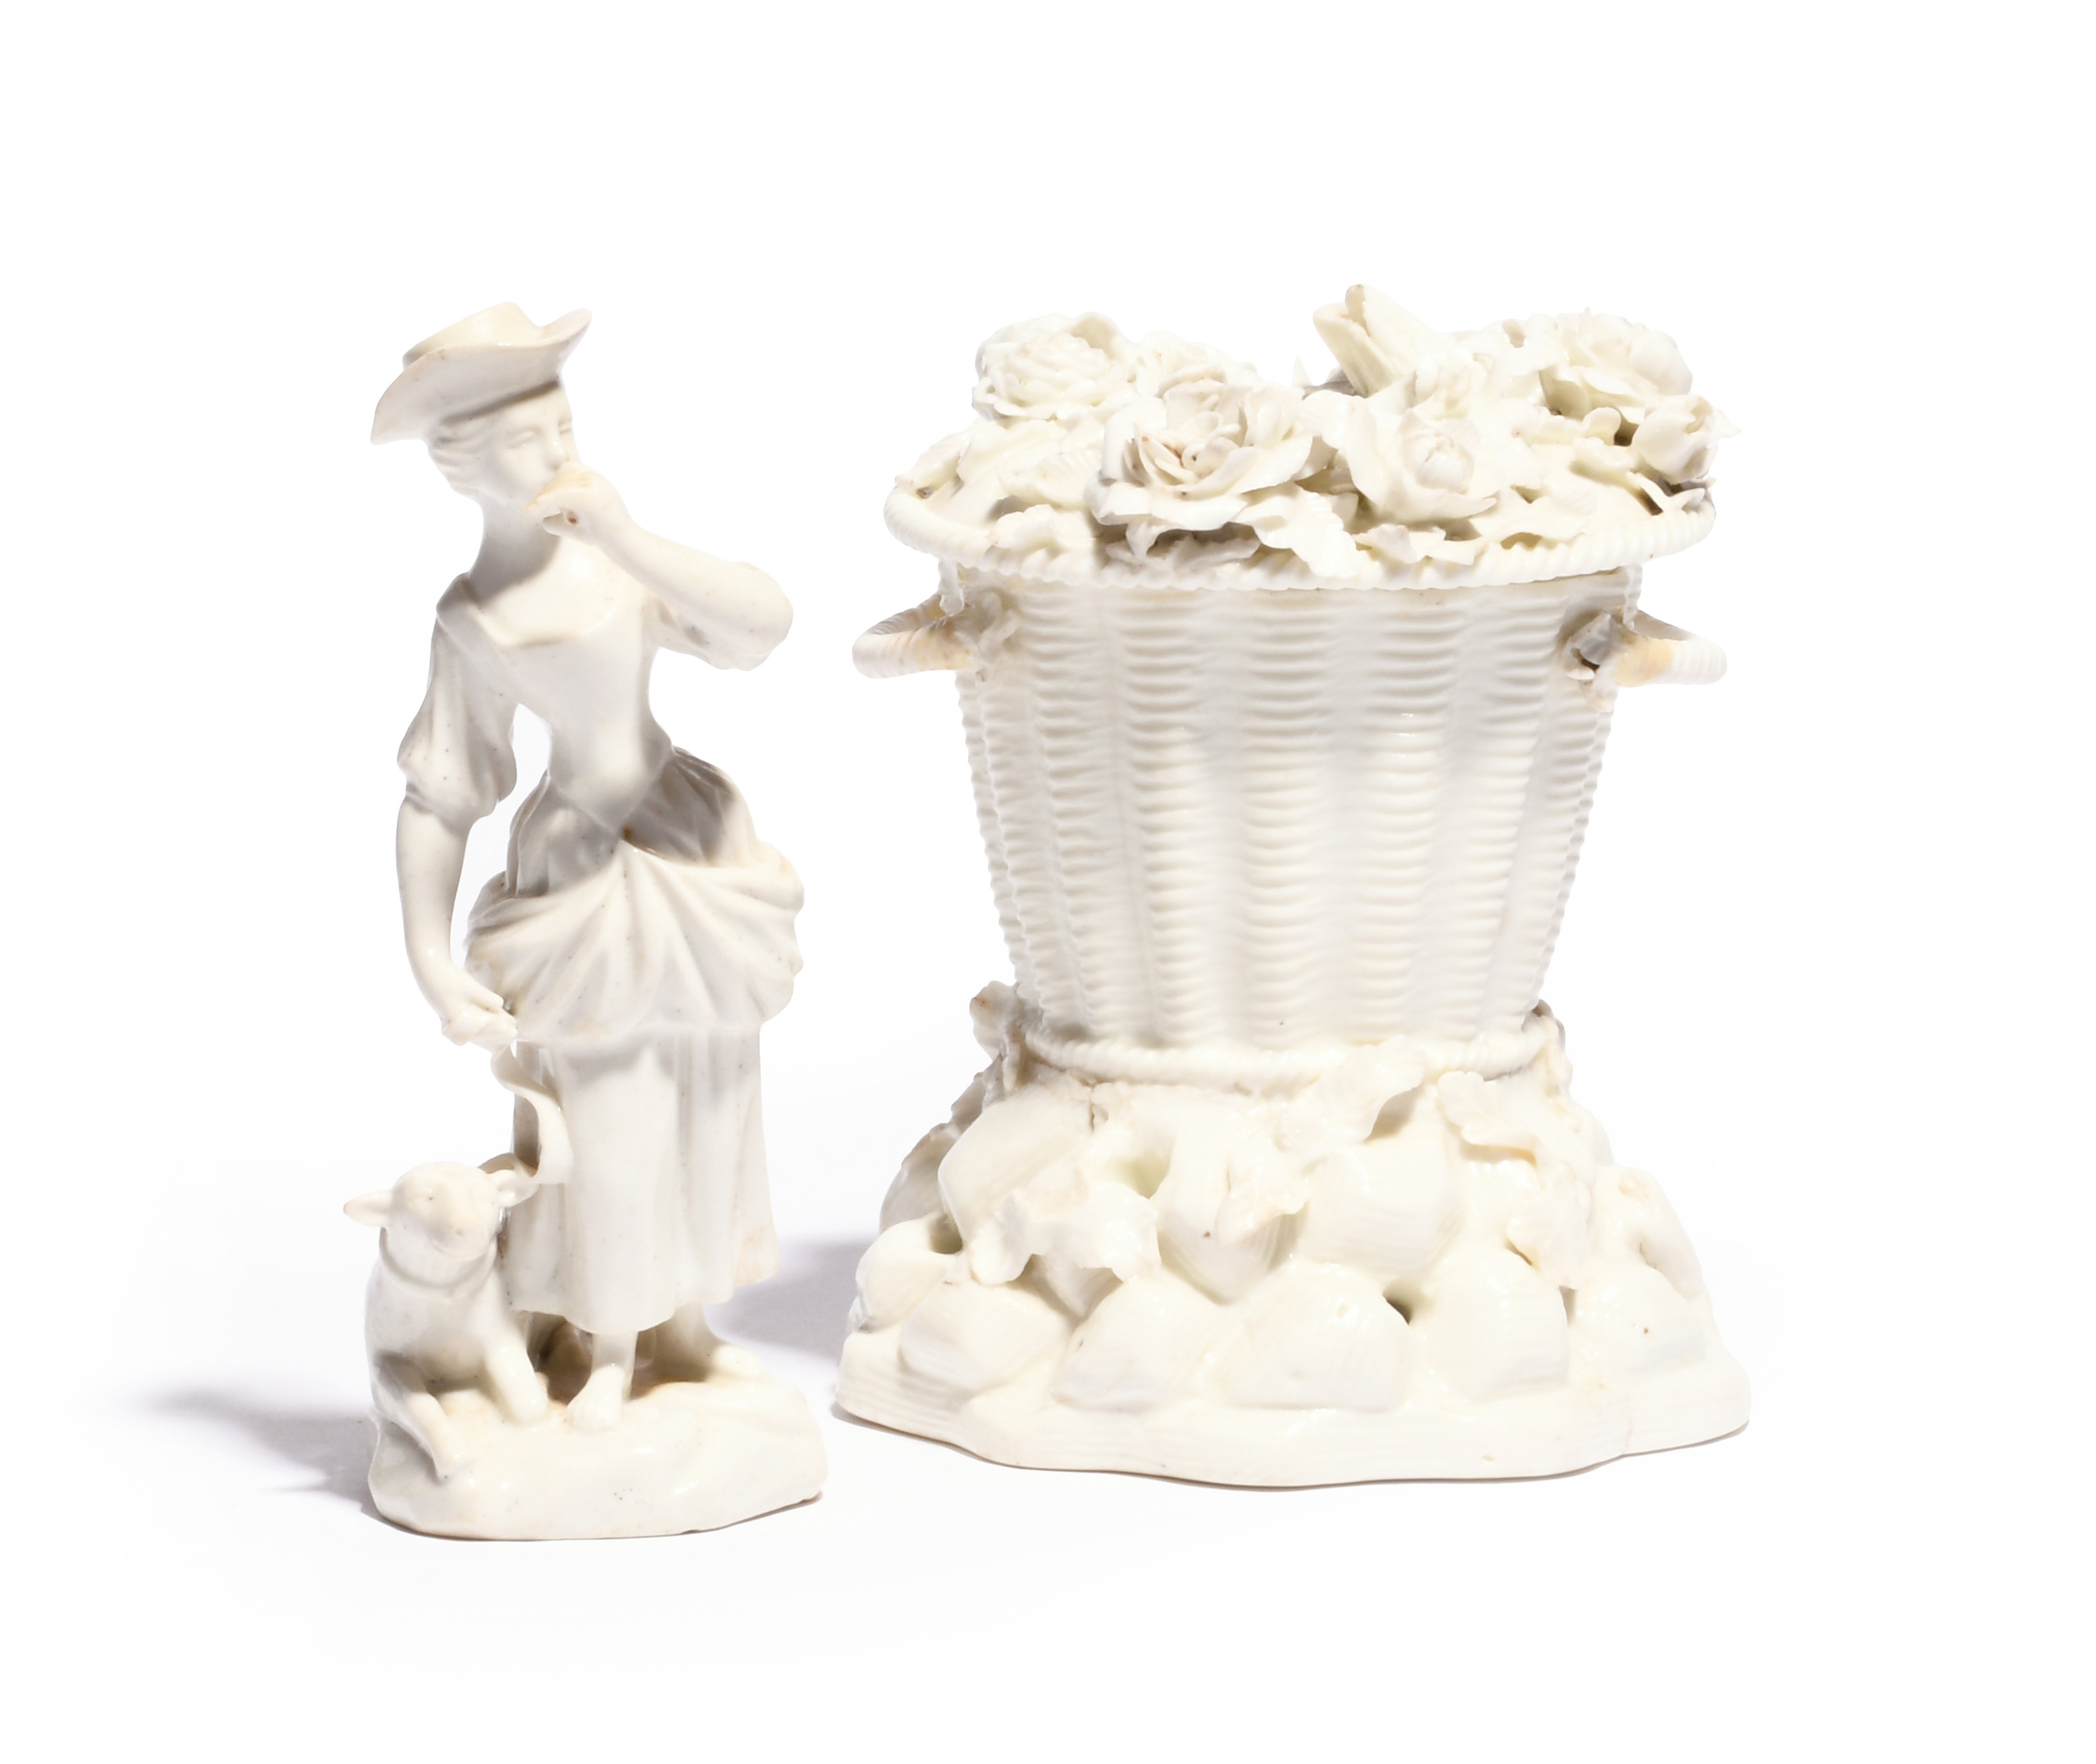 A St Cloud pot pourri vase and associated cover mid 18th century, formed as a basket resting on